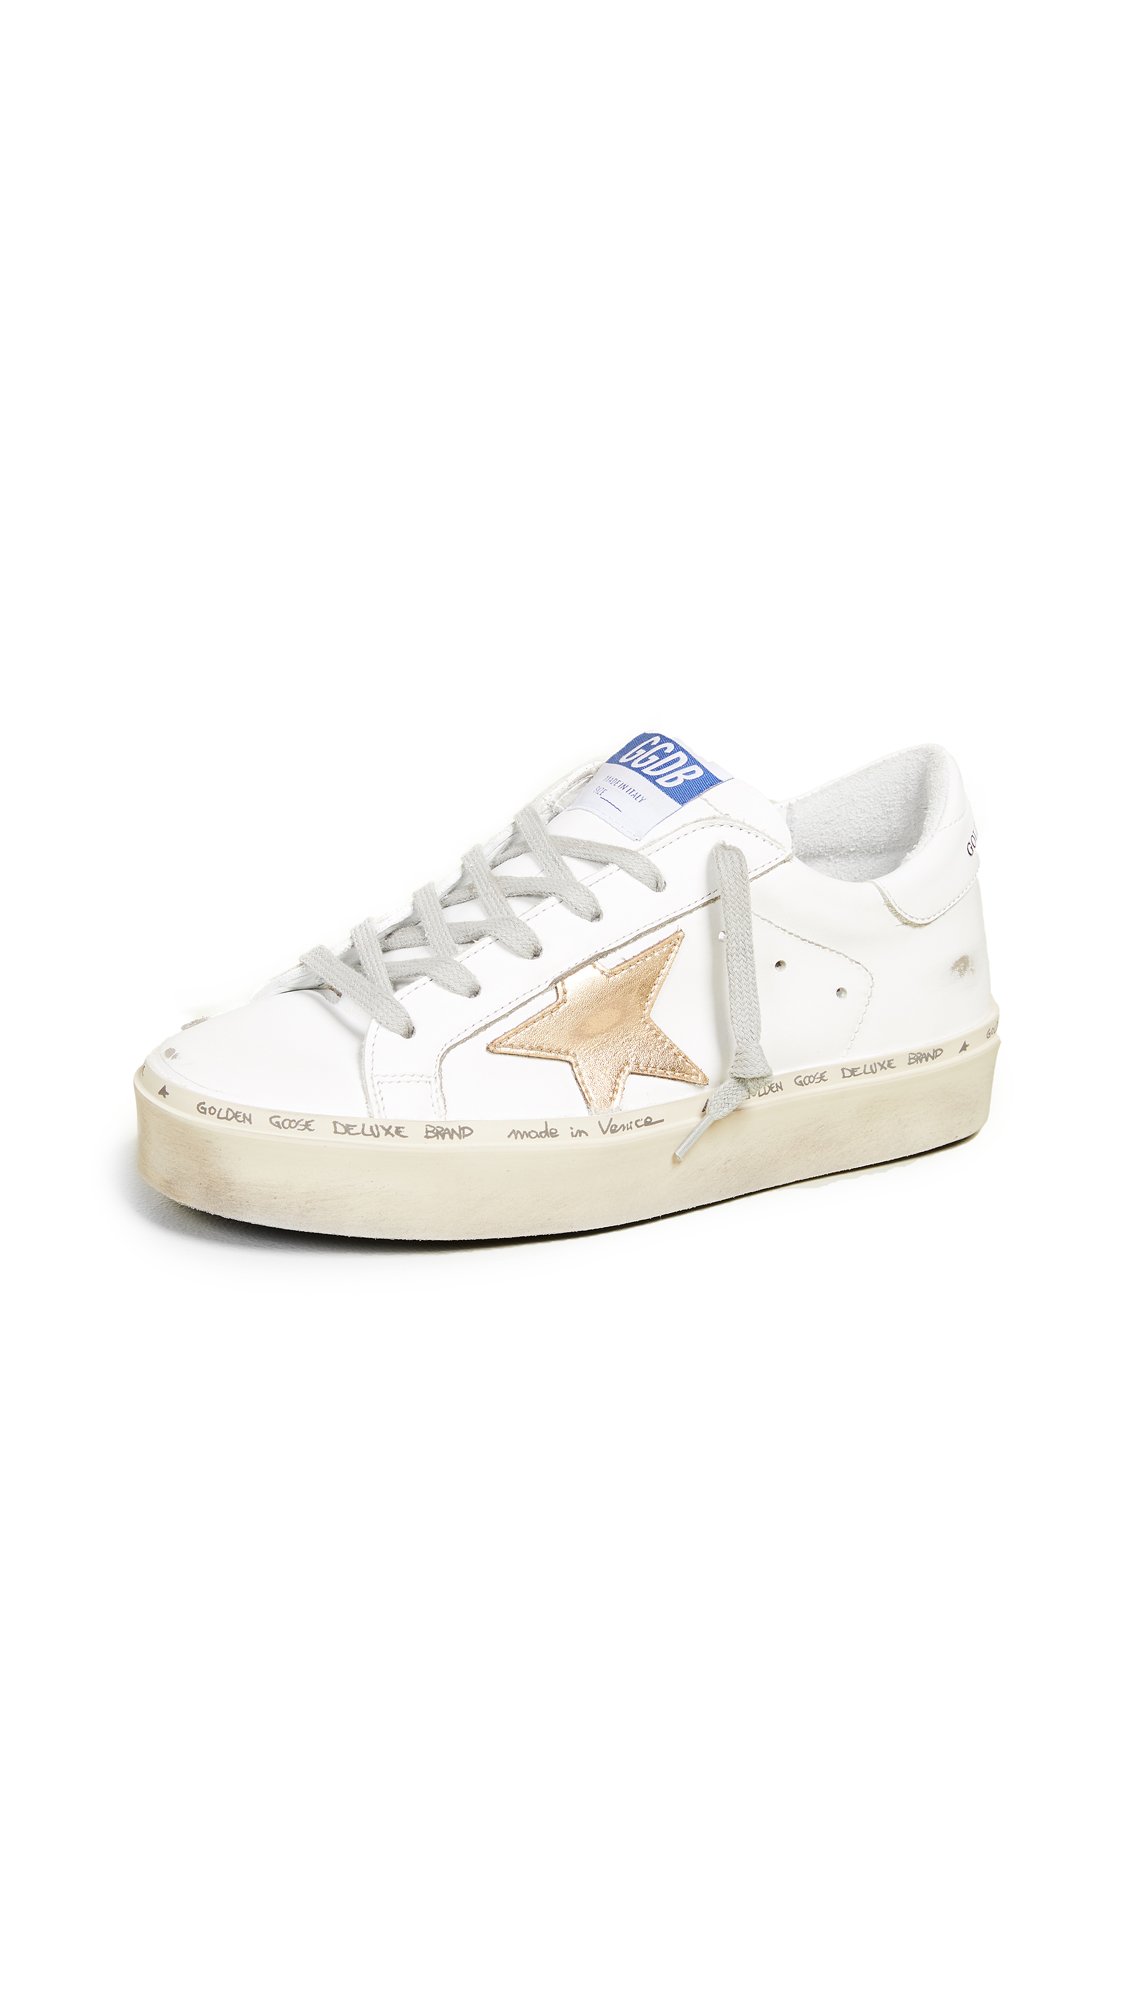 Golden Goose Hi Star Sneakers - White/Gold